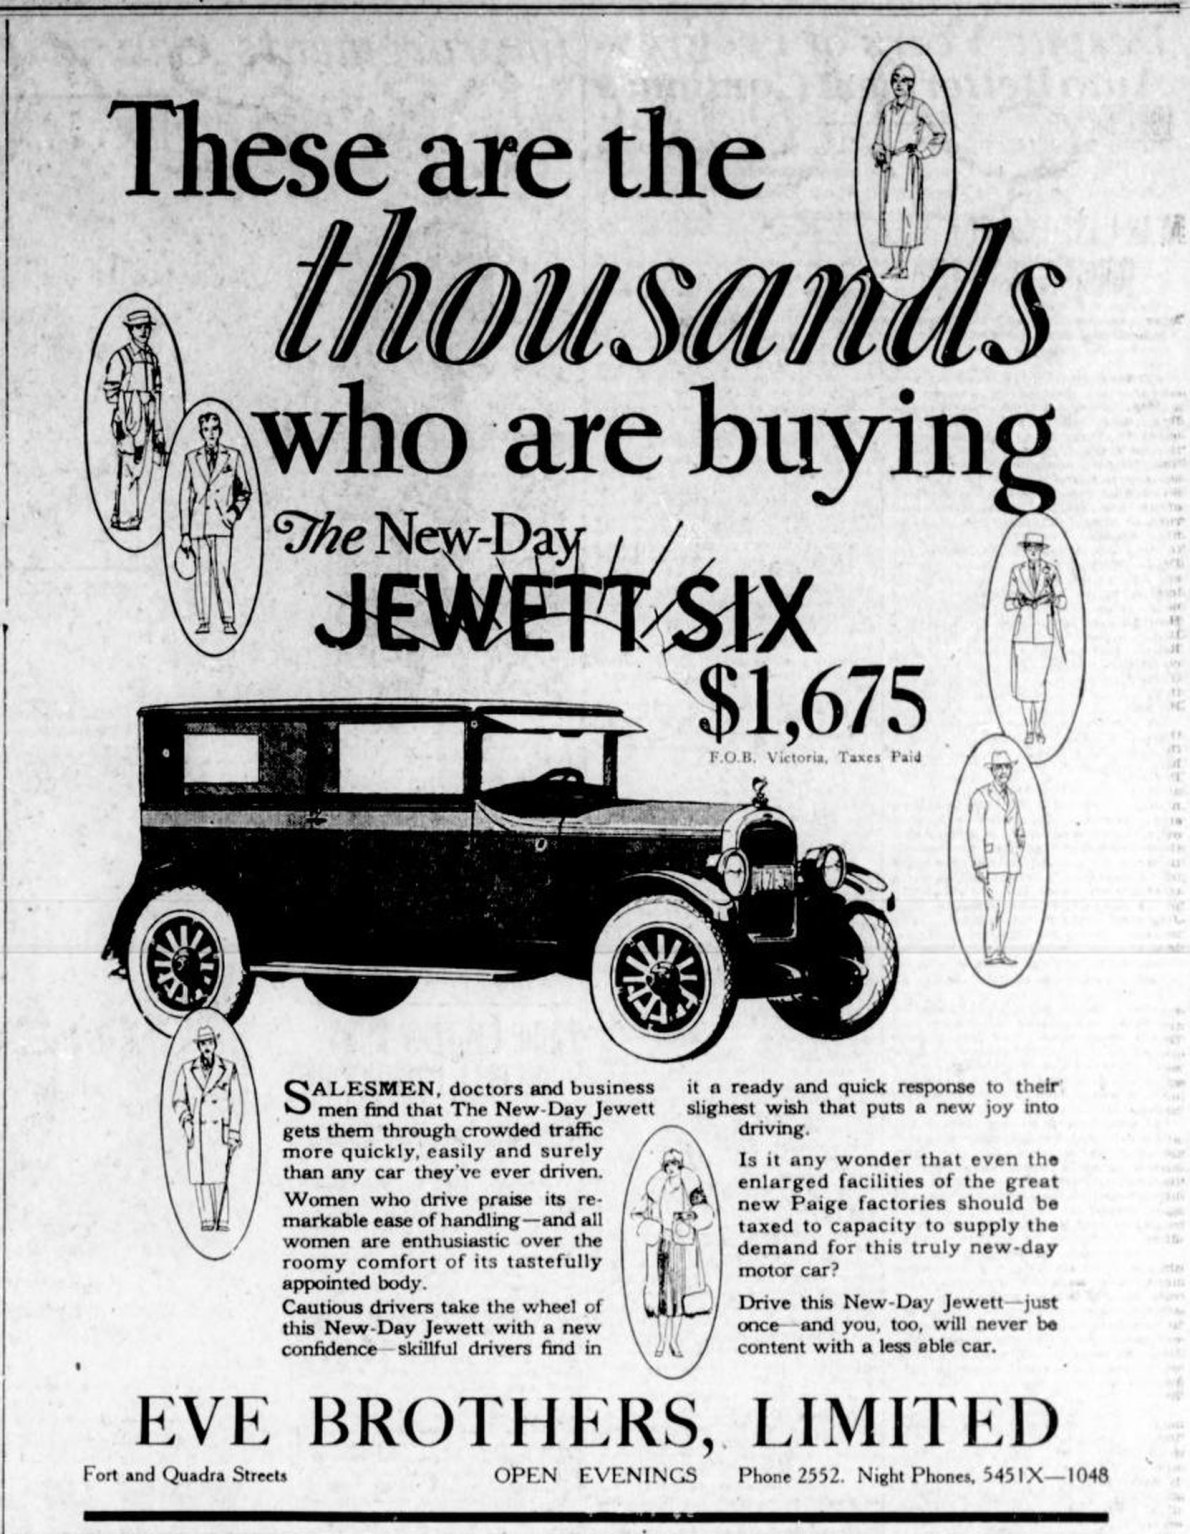 1926 advertisement for Jewett Six automobiles, placed by Eve Brothers Ltd., Fort Street at Quadra Street (900 Fort Street), (Victoria Online Sightseeing Tours collection)